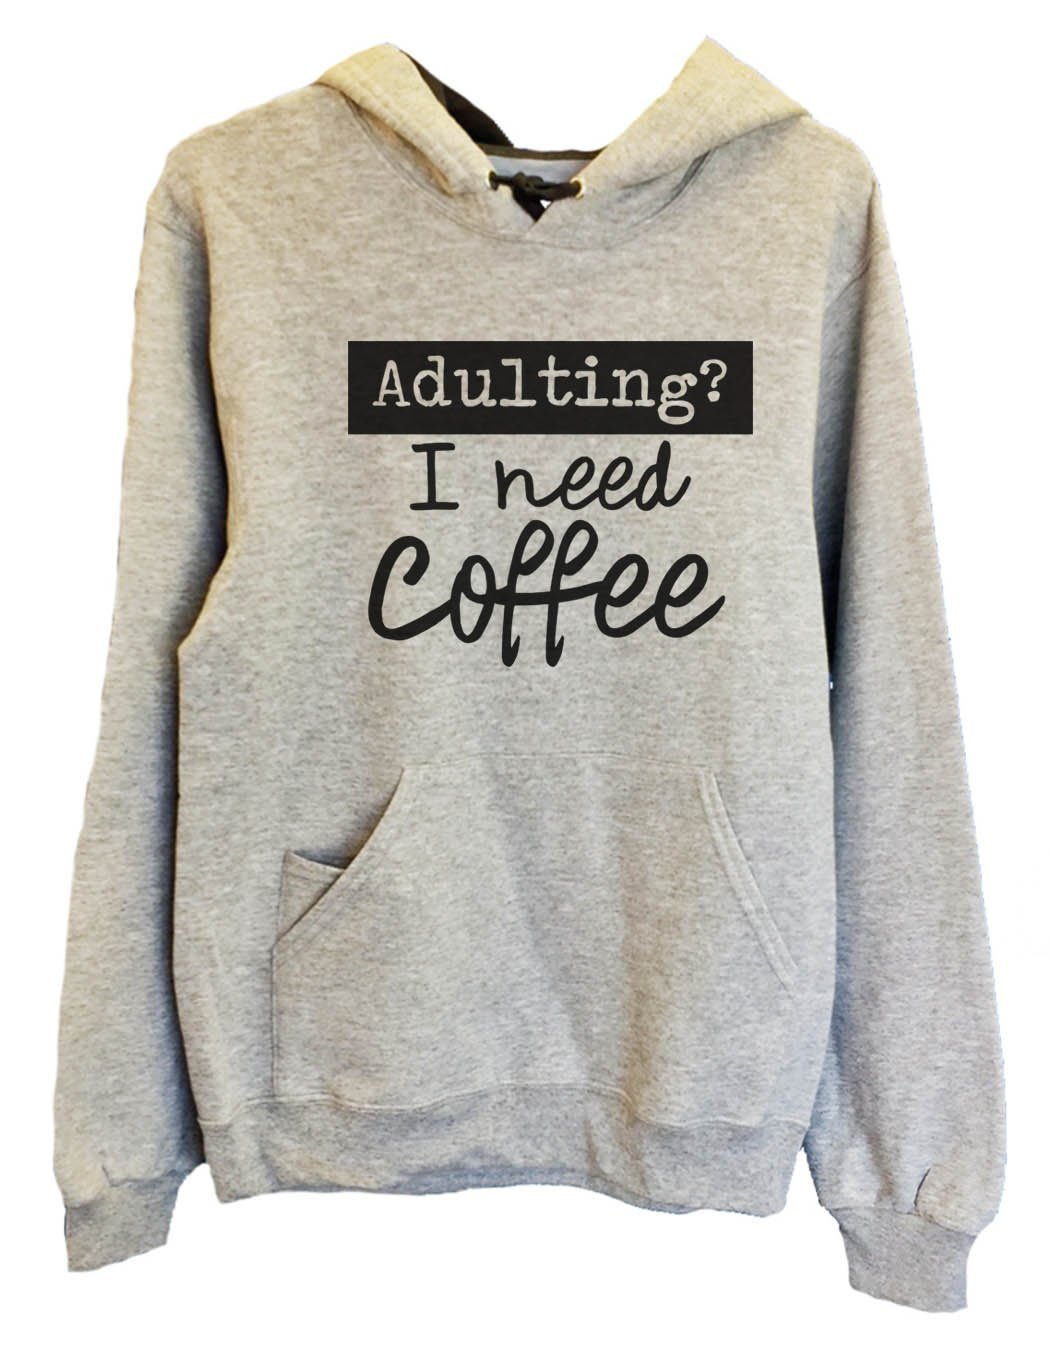 UNISEX HOODIE - Adulting? I Need Coffee - FUNNY MENS AND WOMENS HOODED SWEATSHIRTS - 2207 Funny Shirt Small / Heather Grey